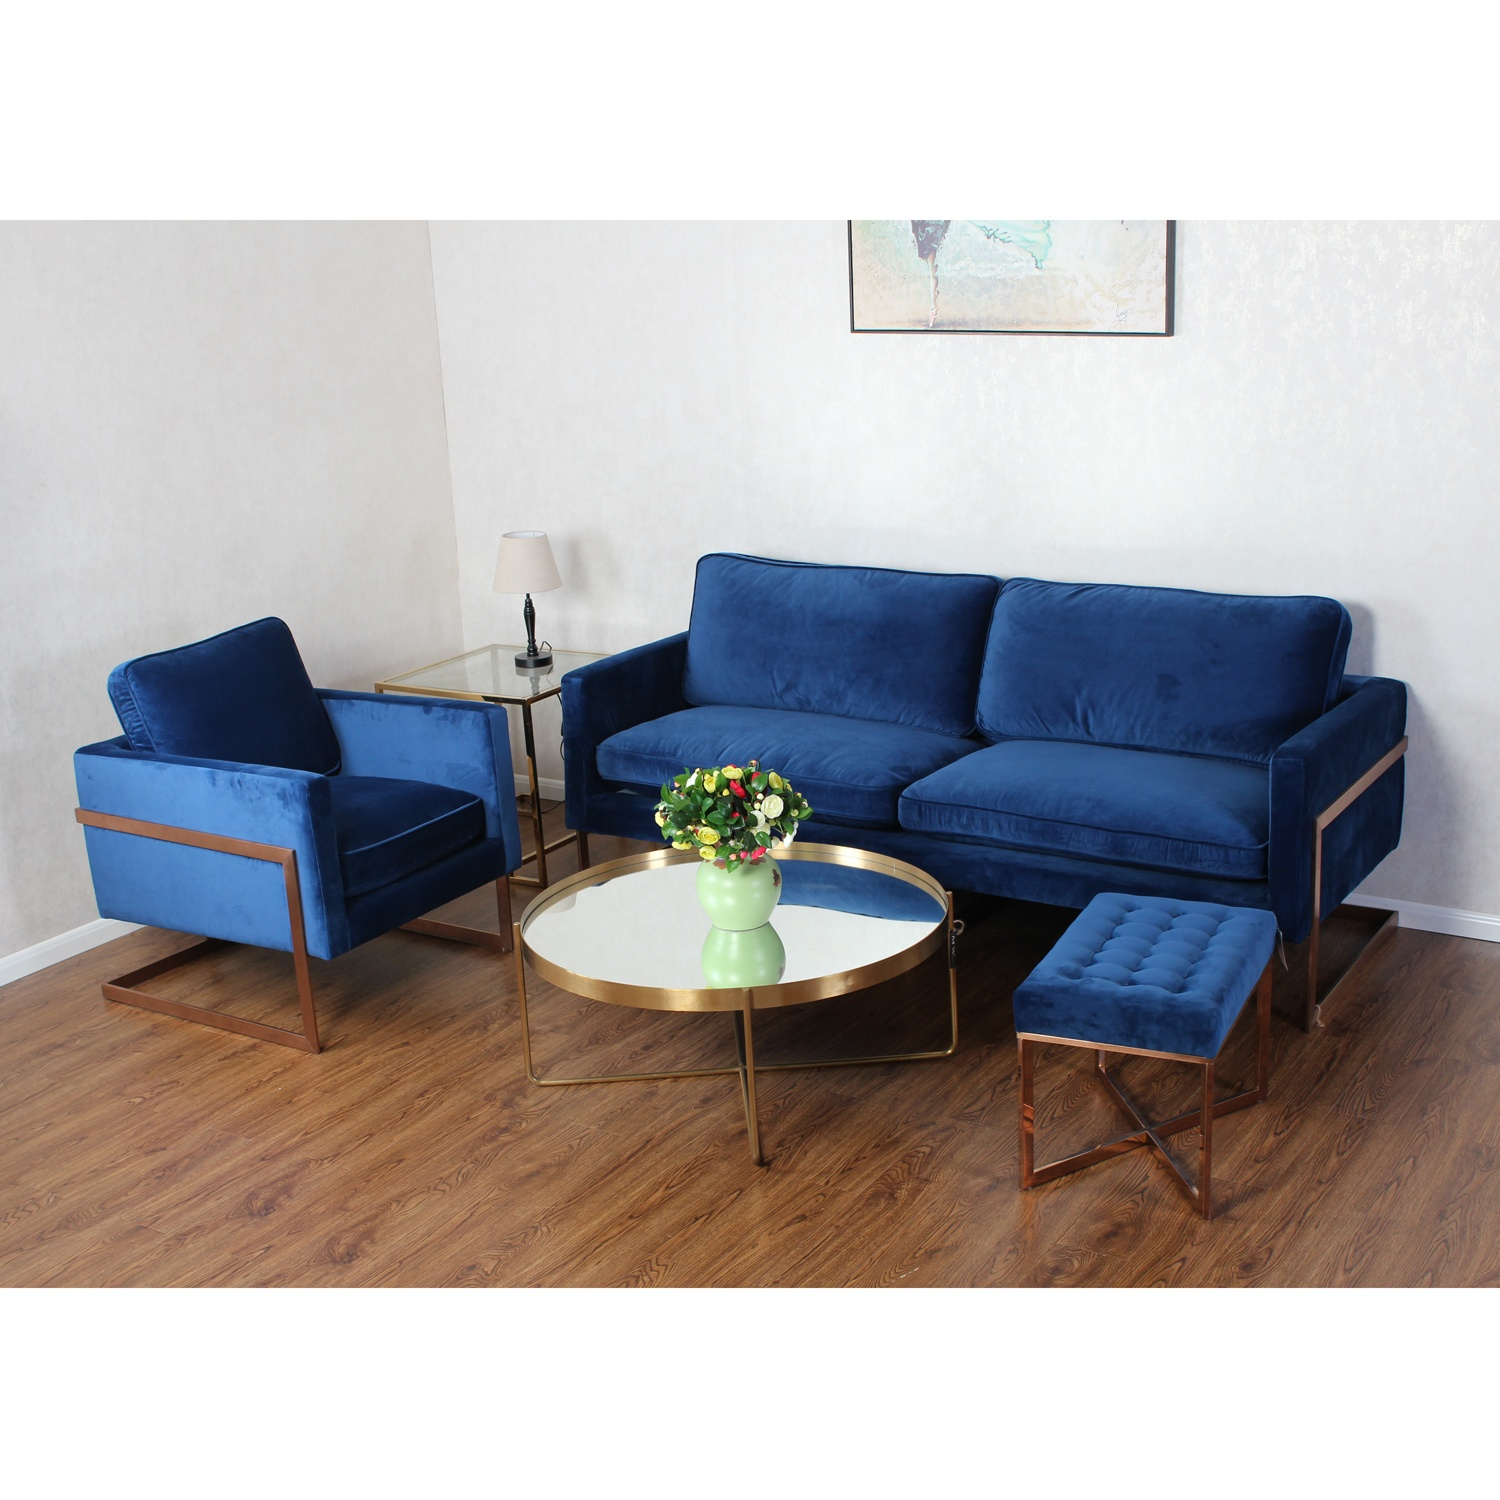 Modern Luxury Velvet Sofa Furniture Comfortable Living Room Blue Velvet  Sofa - Buy Metal Blue Sofa,Luxury Velvet Sofa,Blue Velvet Sofa Product on  ...